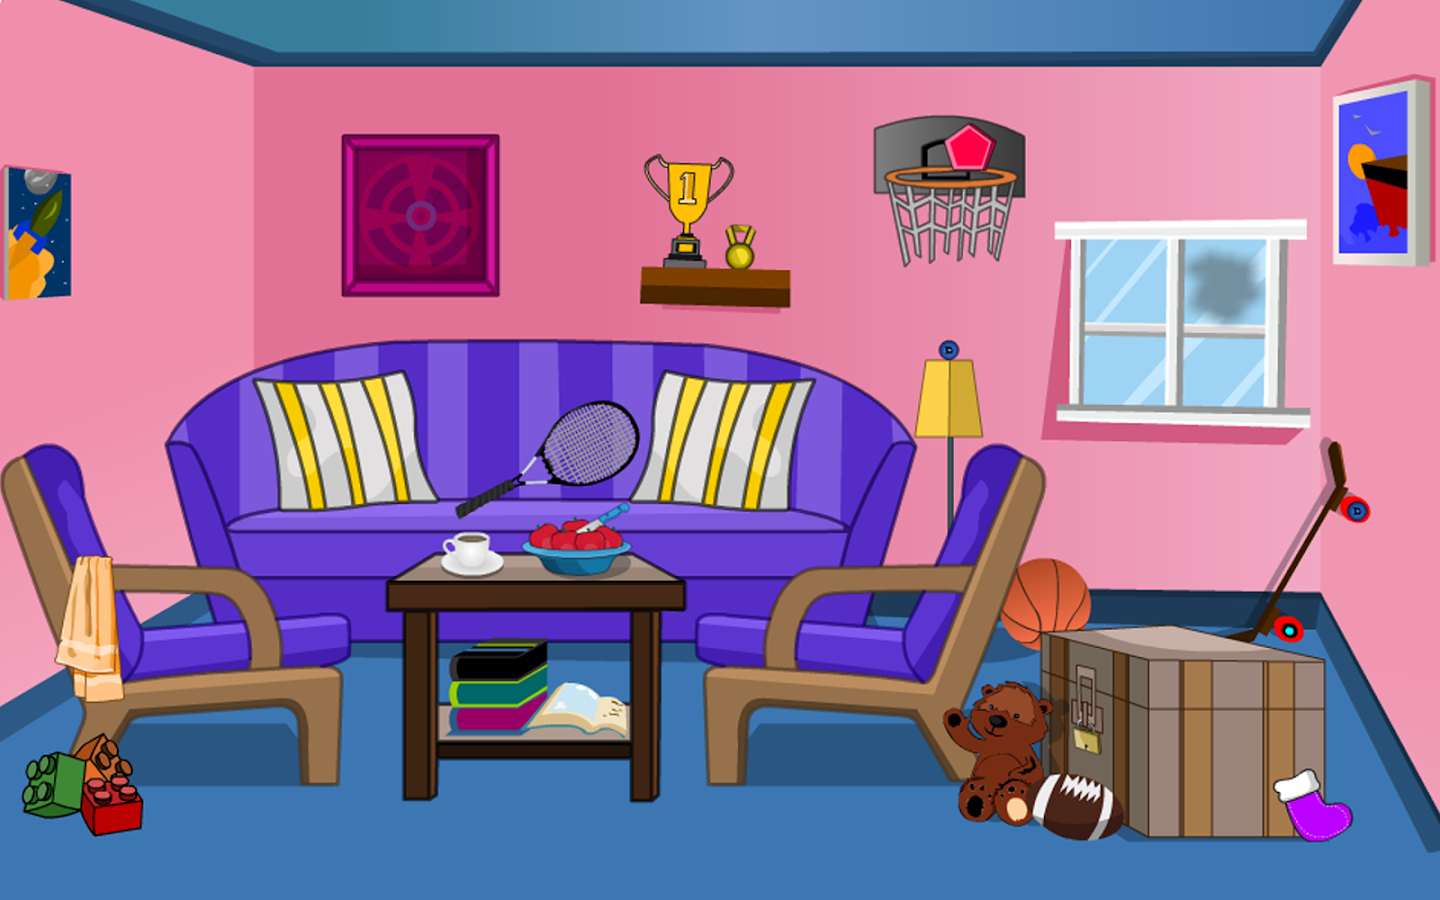 room escape-puzzle daycare - android apps on google play